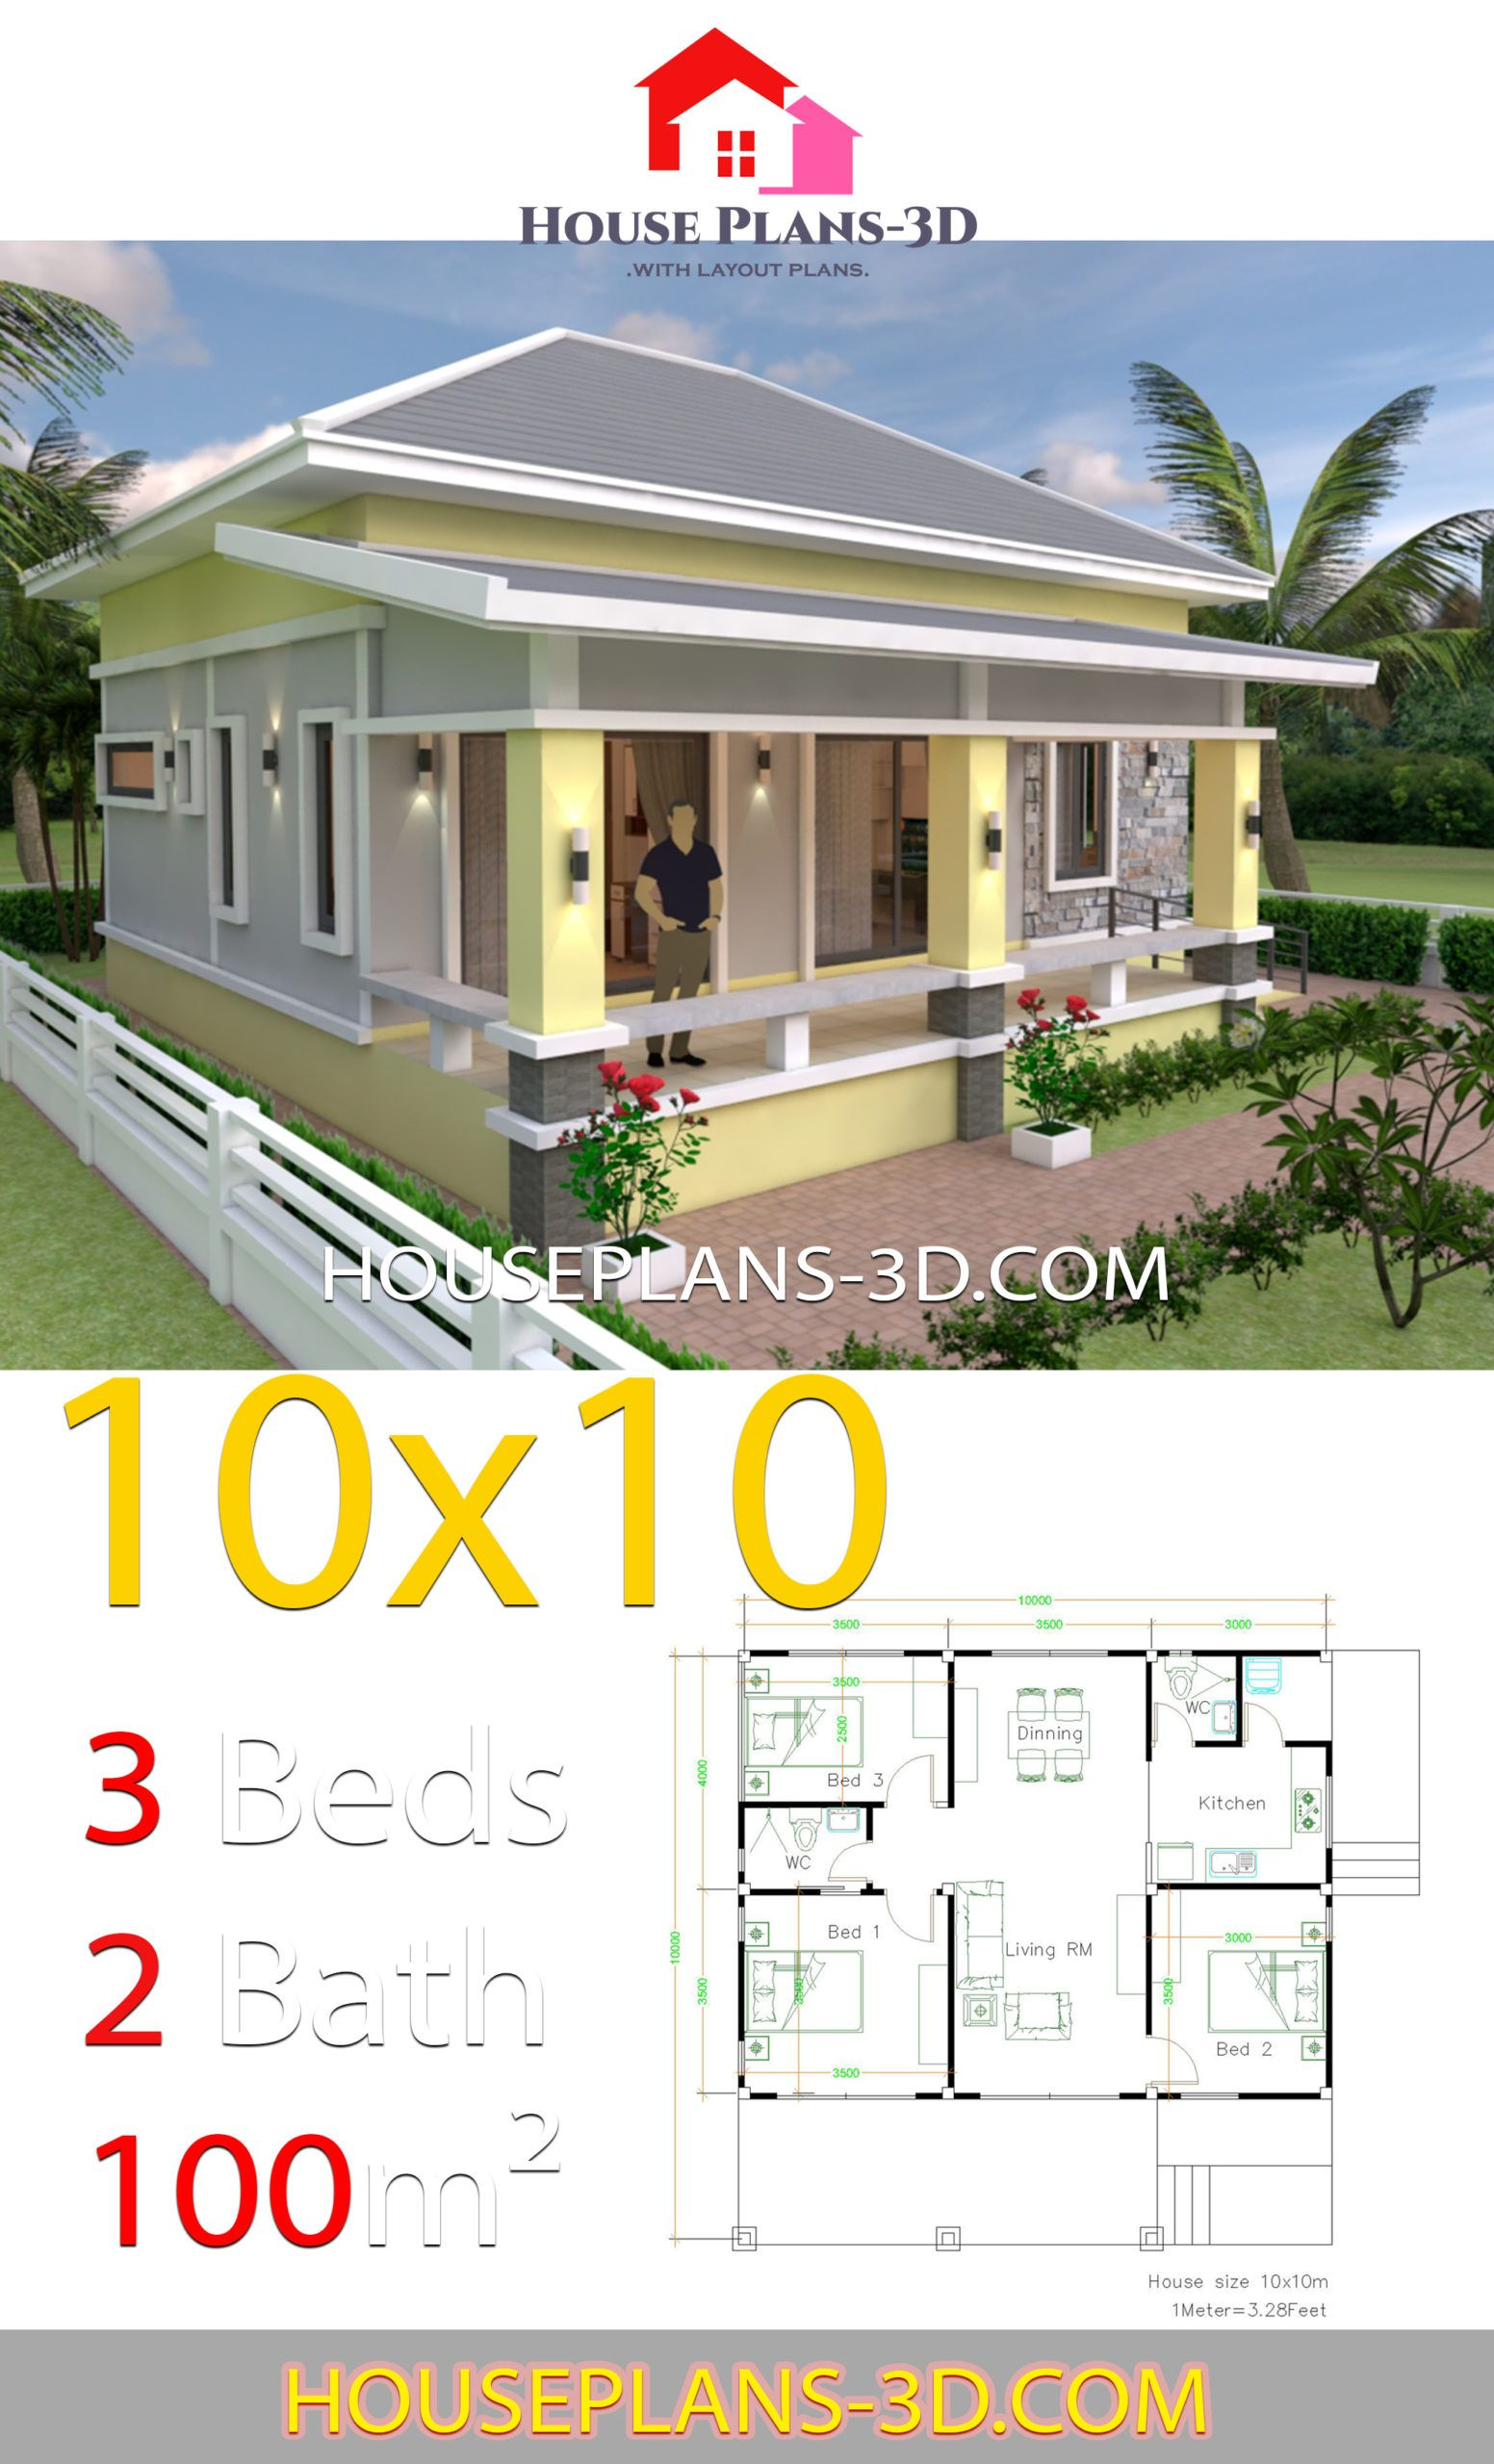 House Design 10x10 With 3 Bedrooms Hip Roof House Plans 3d House Plans Small House Design Plans House Roof